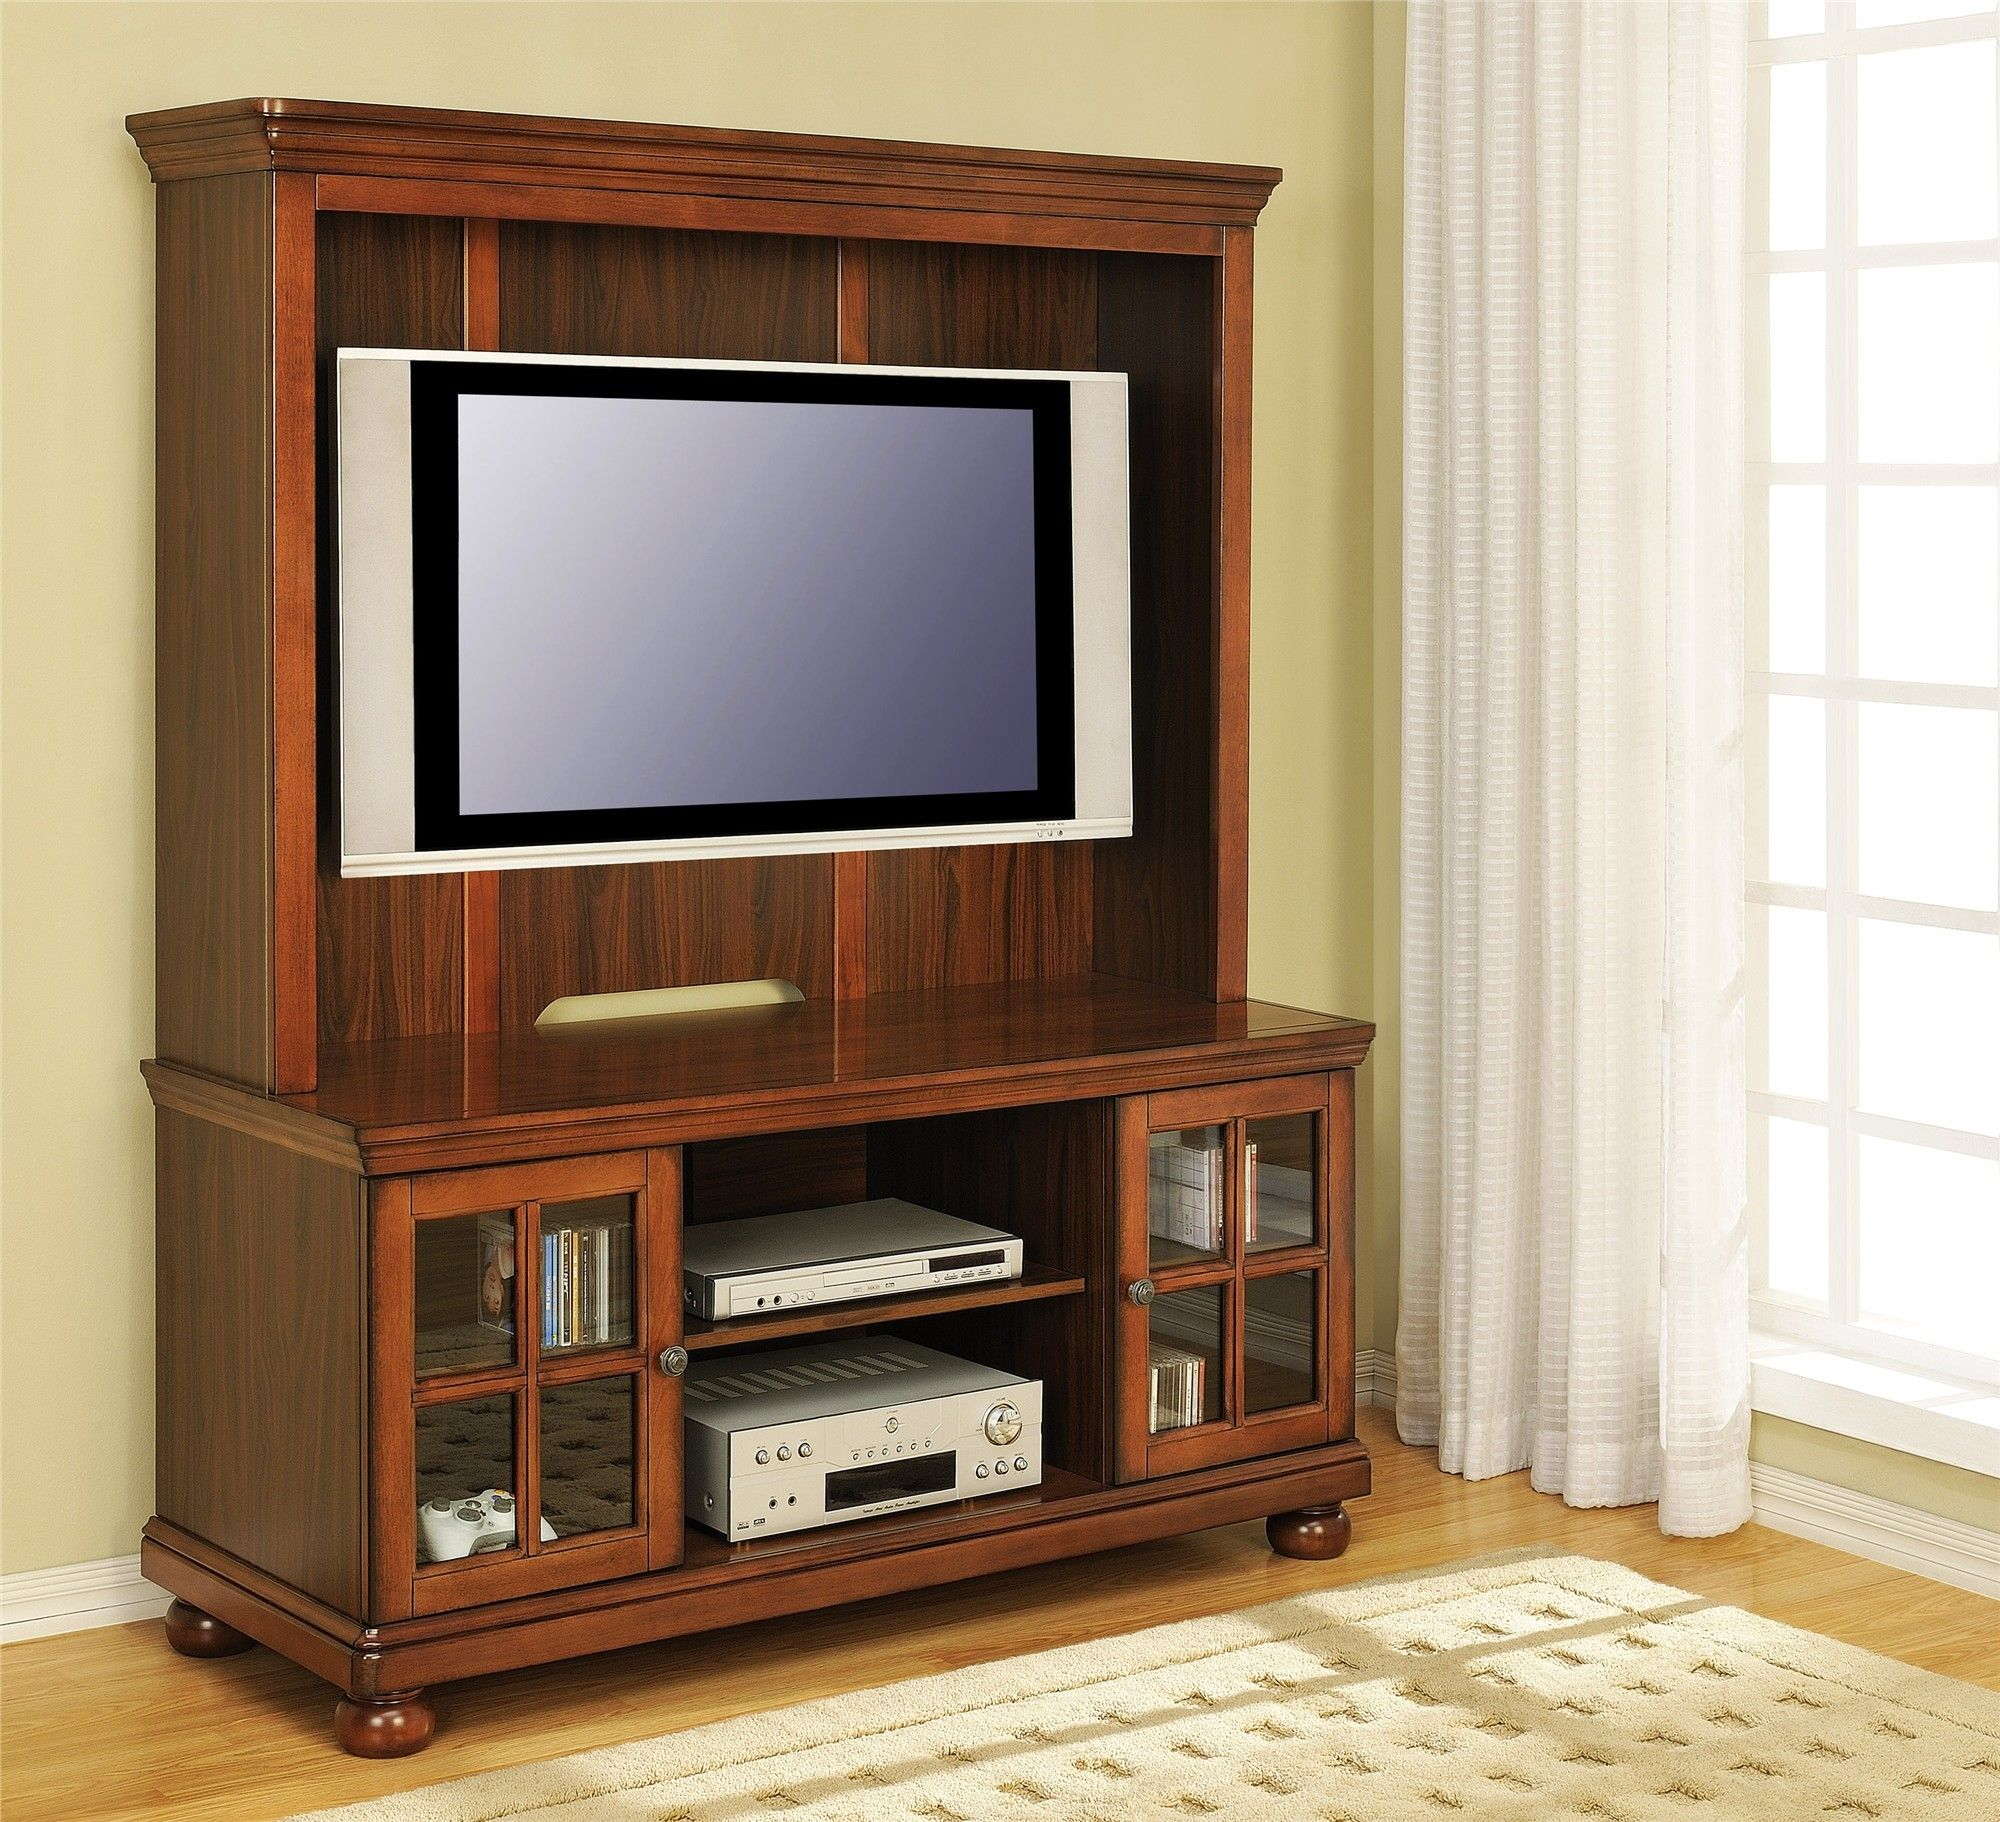 Wall Mount Flat Screen Tv Cabinet With Doors Http Betdaffaires  # Muebles Fiasini